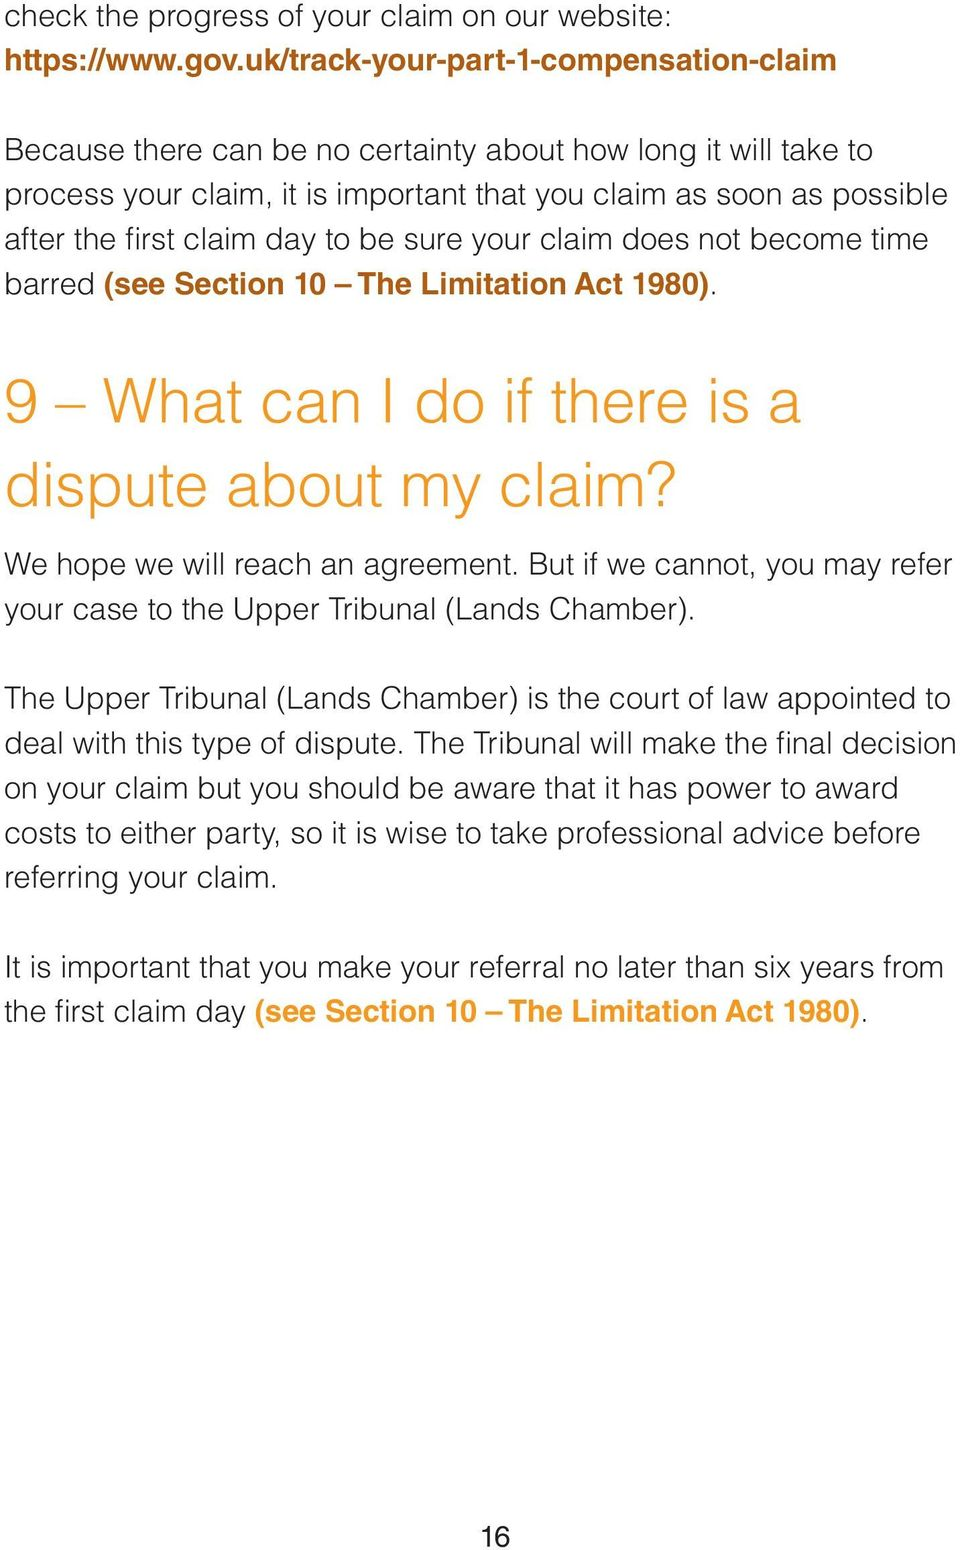 day to be sure your claim does not become time barred (see Section 10 The Limitation Act 1980). 9 What can I do if there is a dispute about my claim? We hope we will reach an agreement.